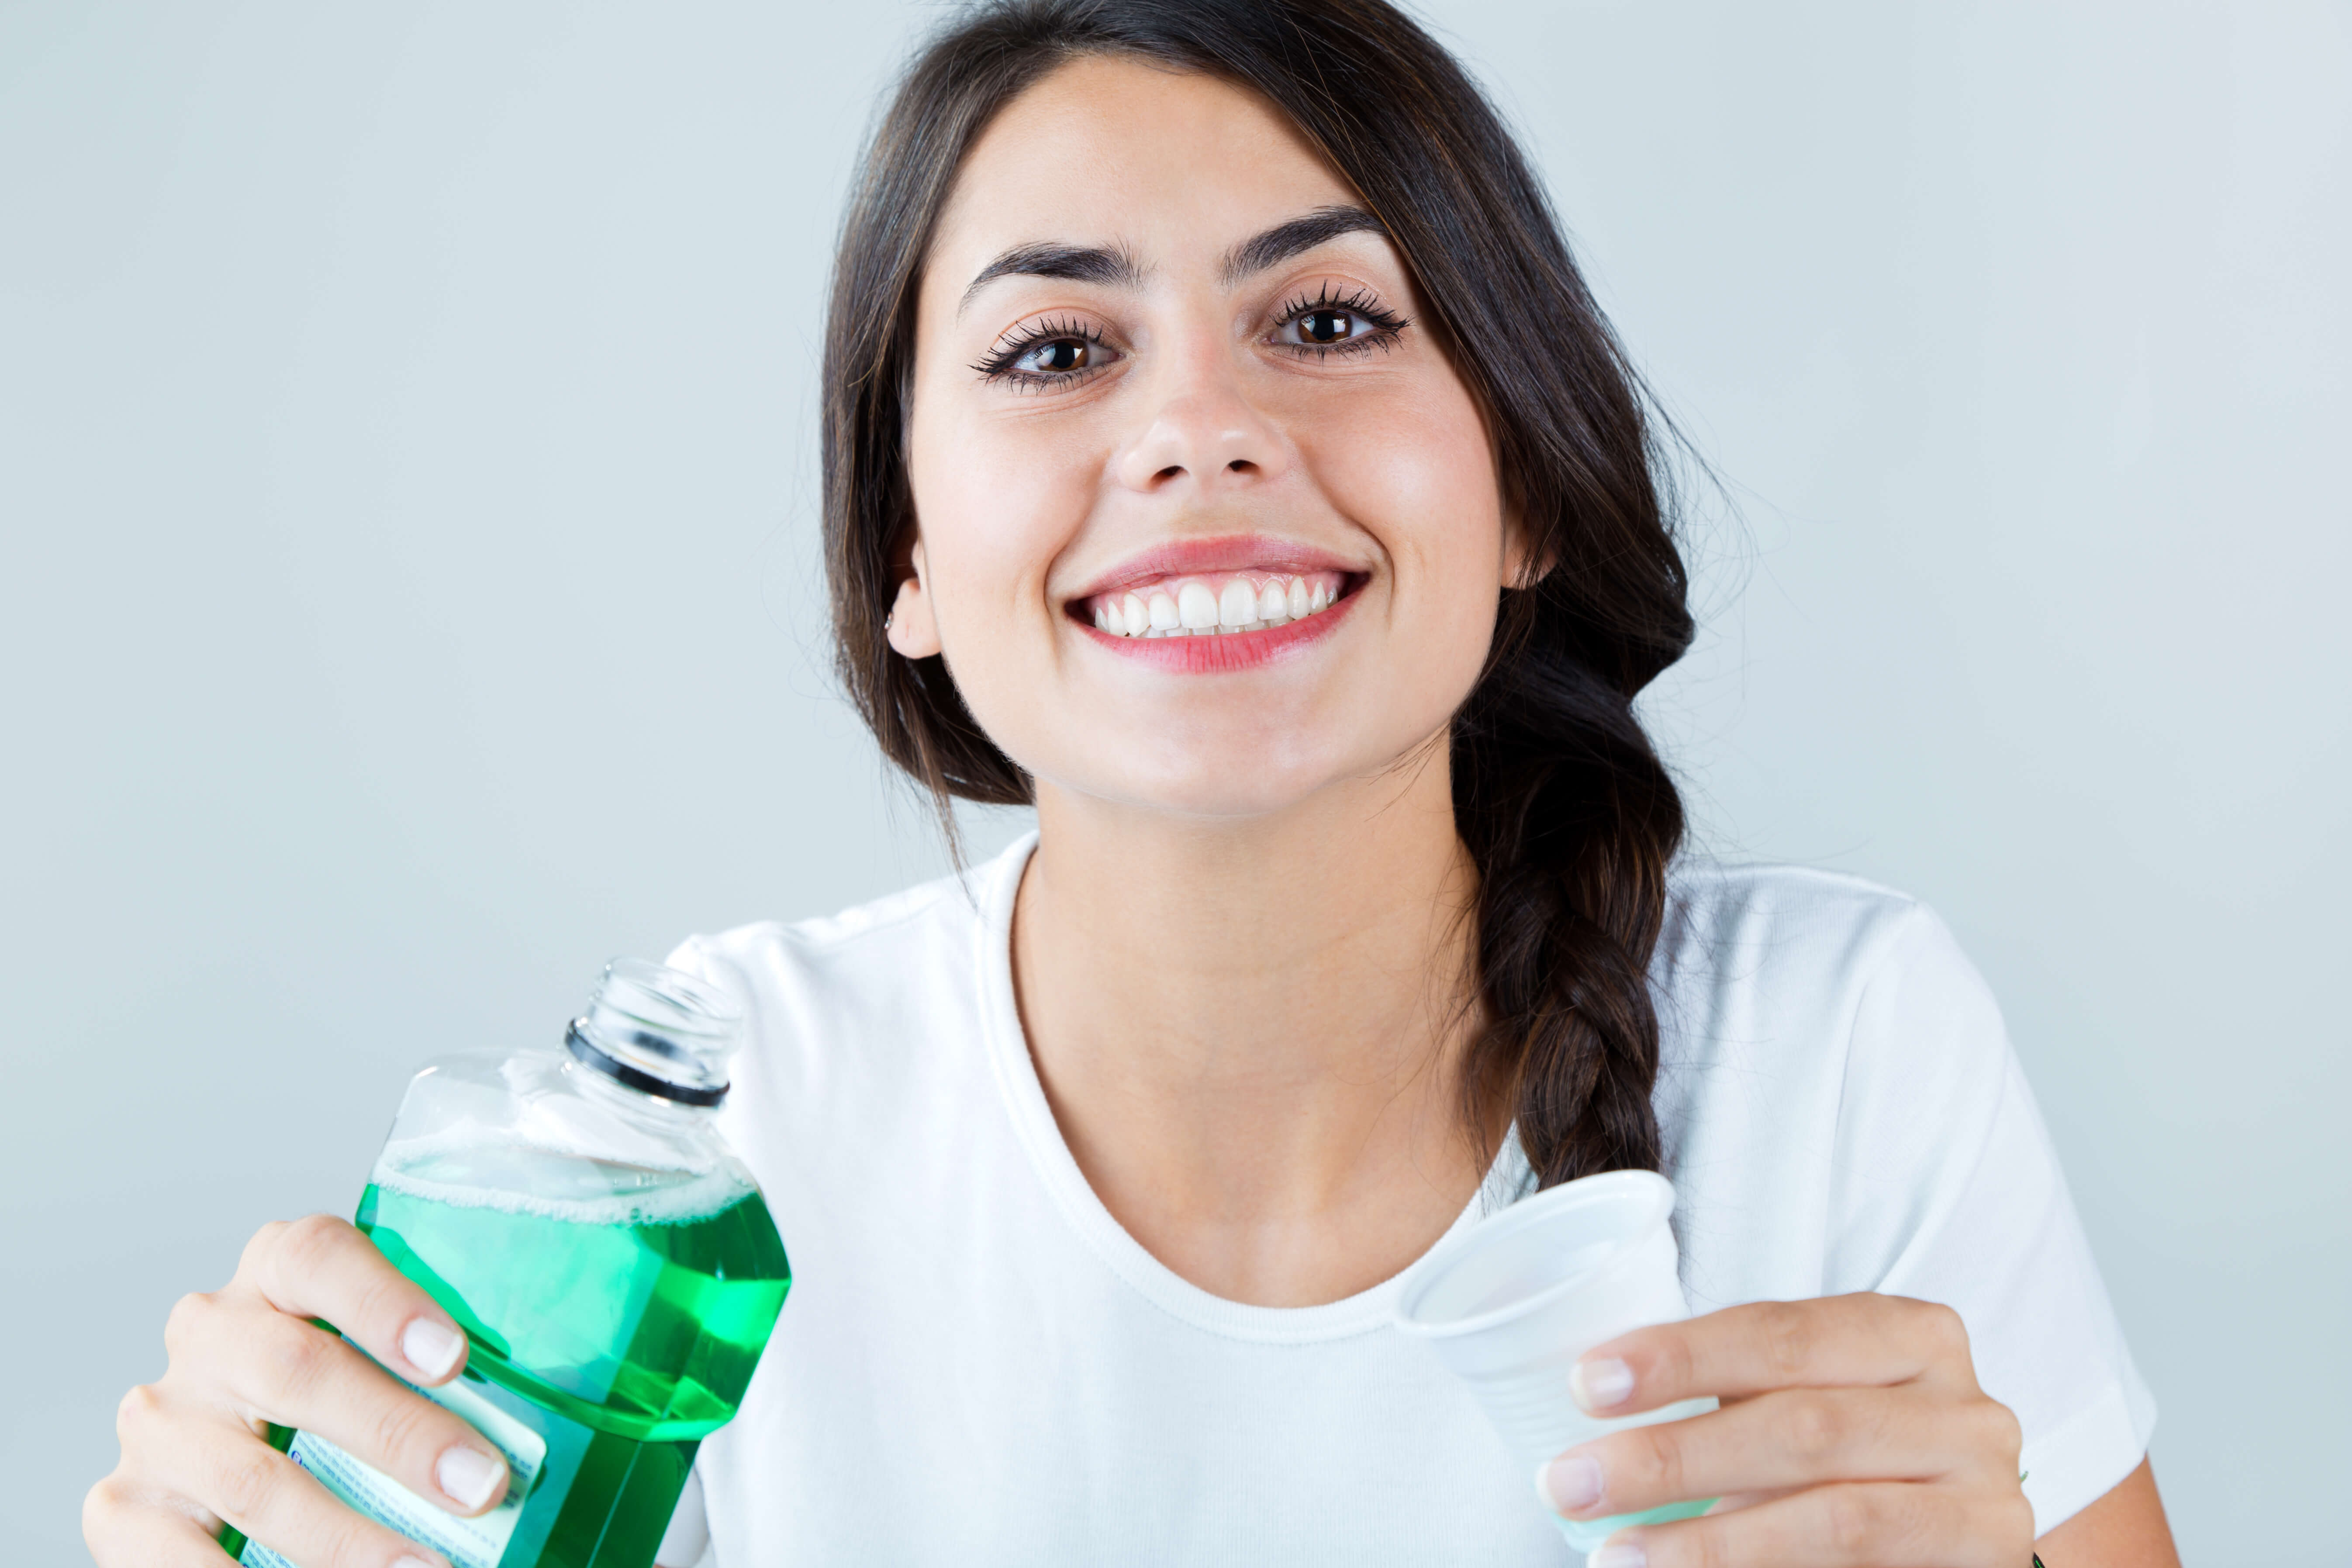 Common Questions About Using Mouthwash | Avalon Dental, your Carson and El Segundo Dentist